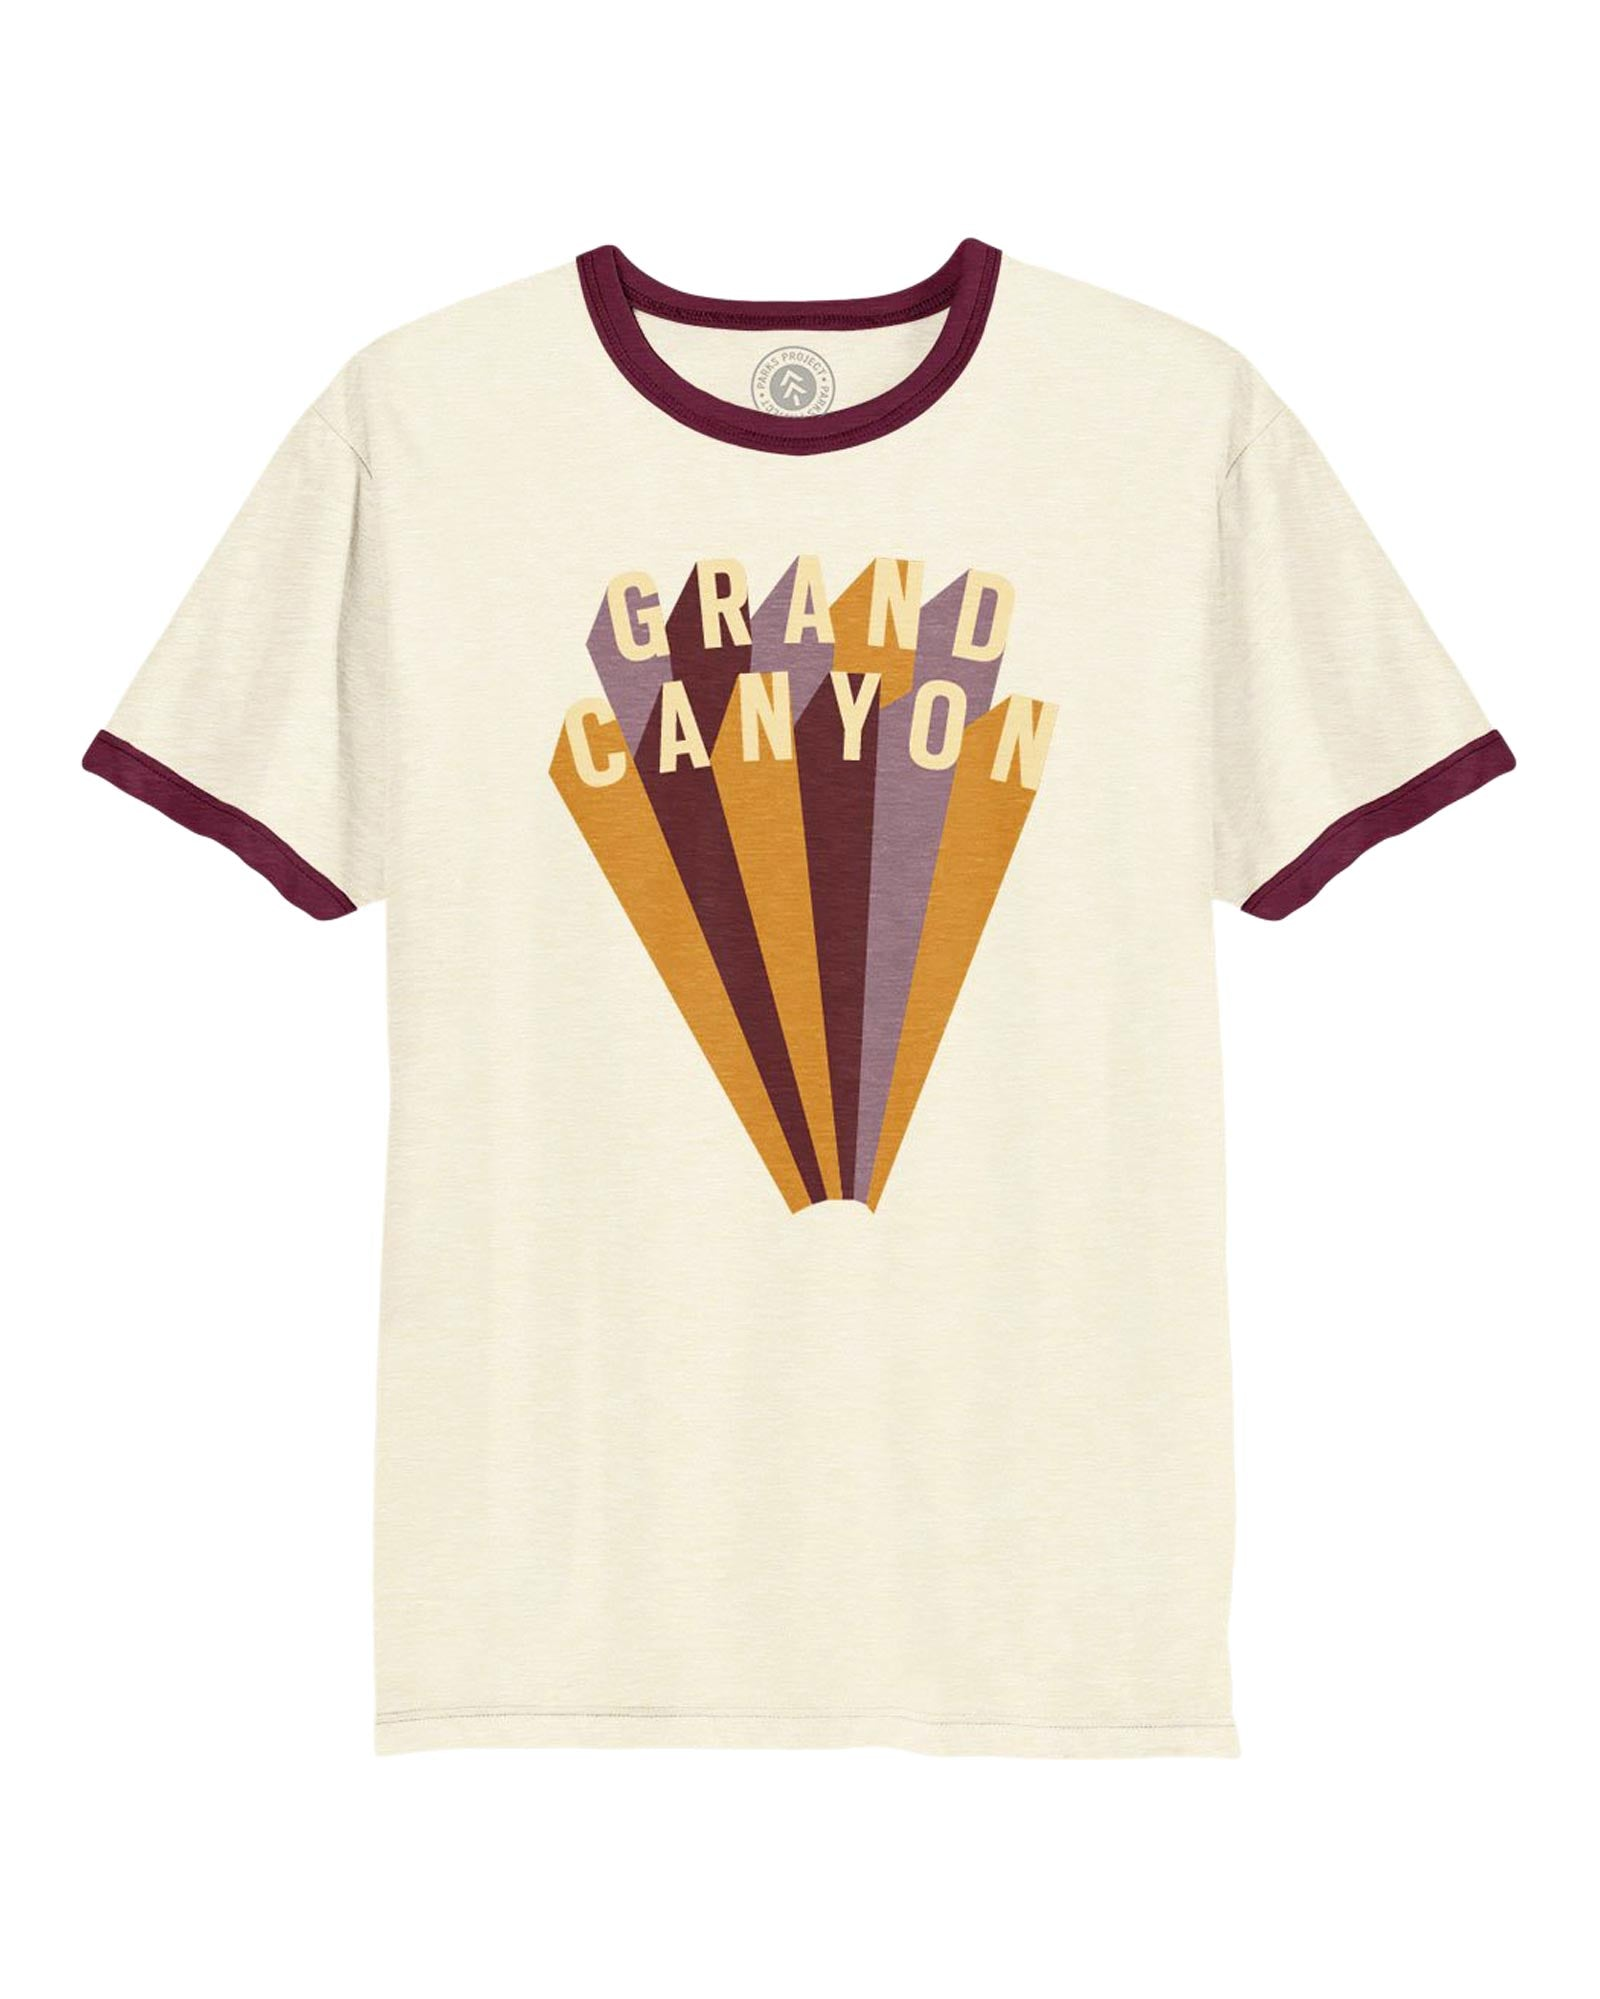 Grand Canyon Burst Women's Ringer | Parks Project | National Parks Apparel